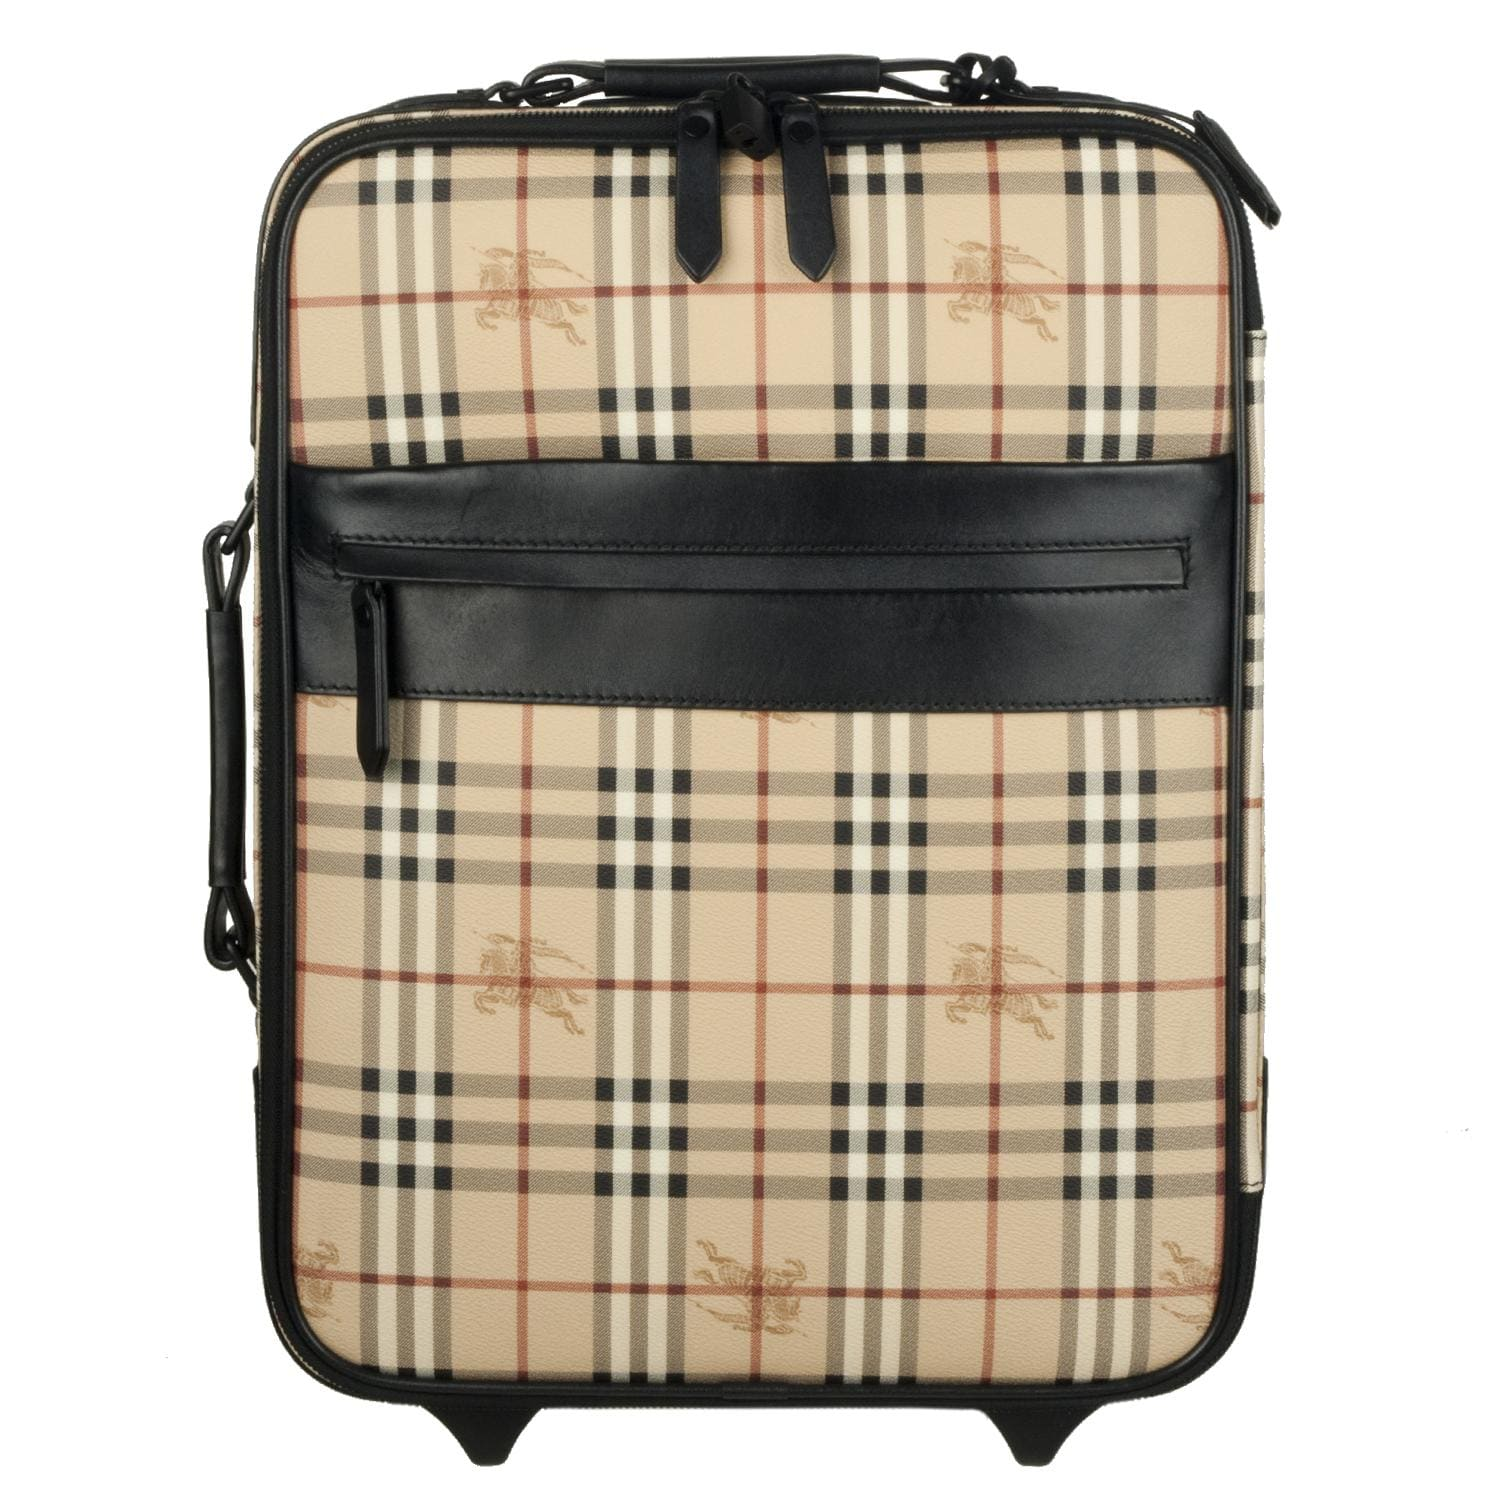 Burberry 19 Inch Check Print Carry On Upright Free